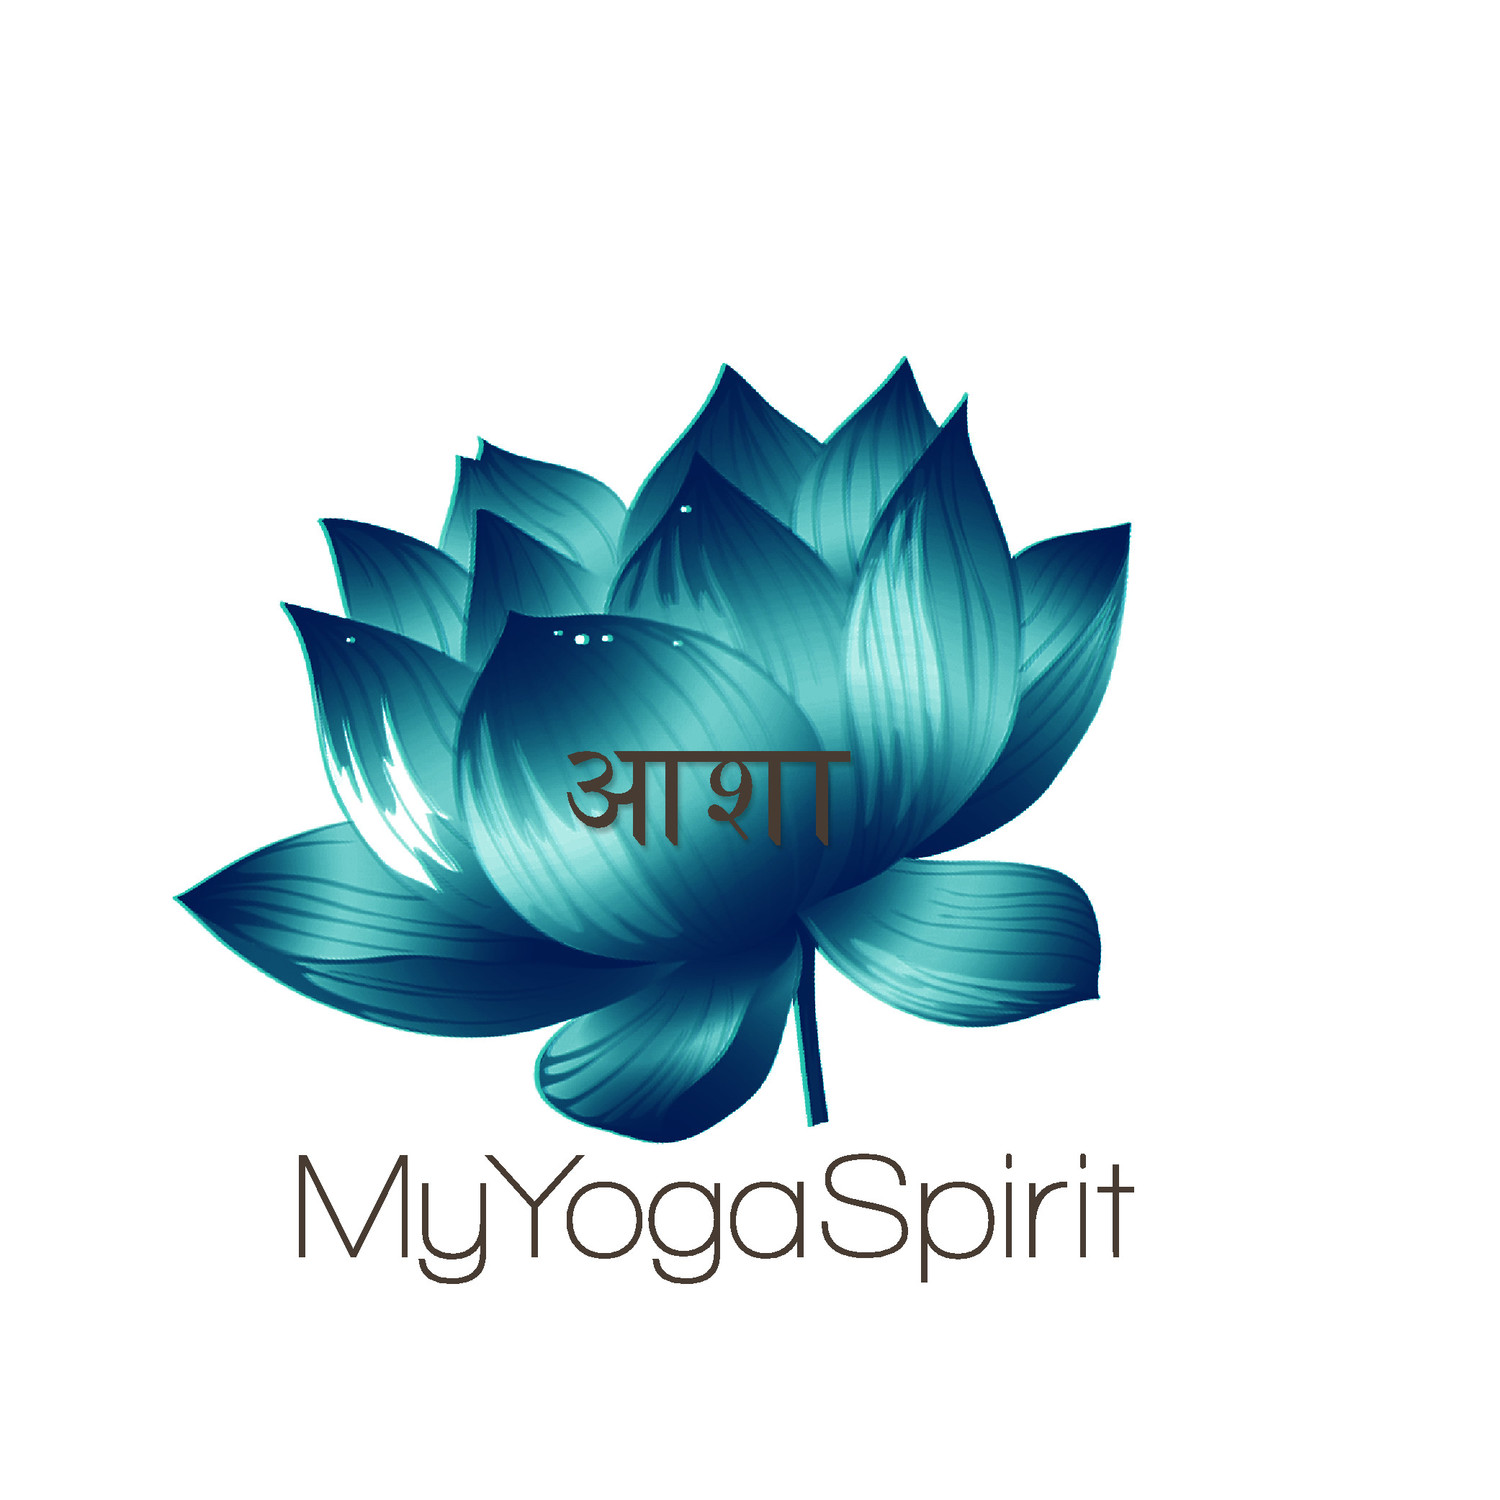 My Yoga Spirit